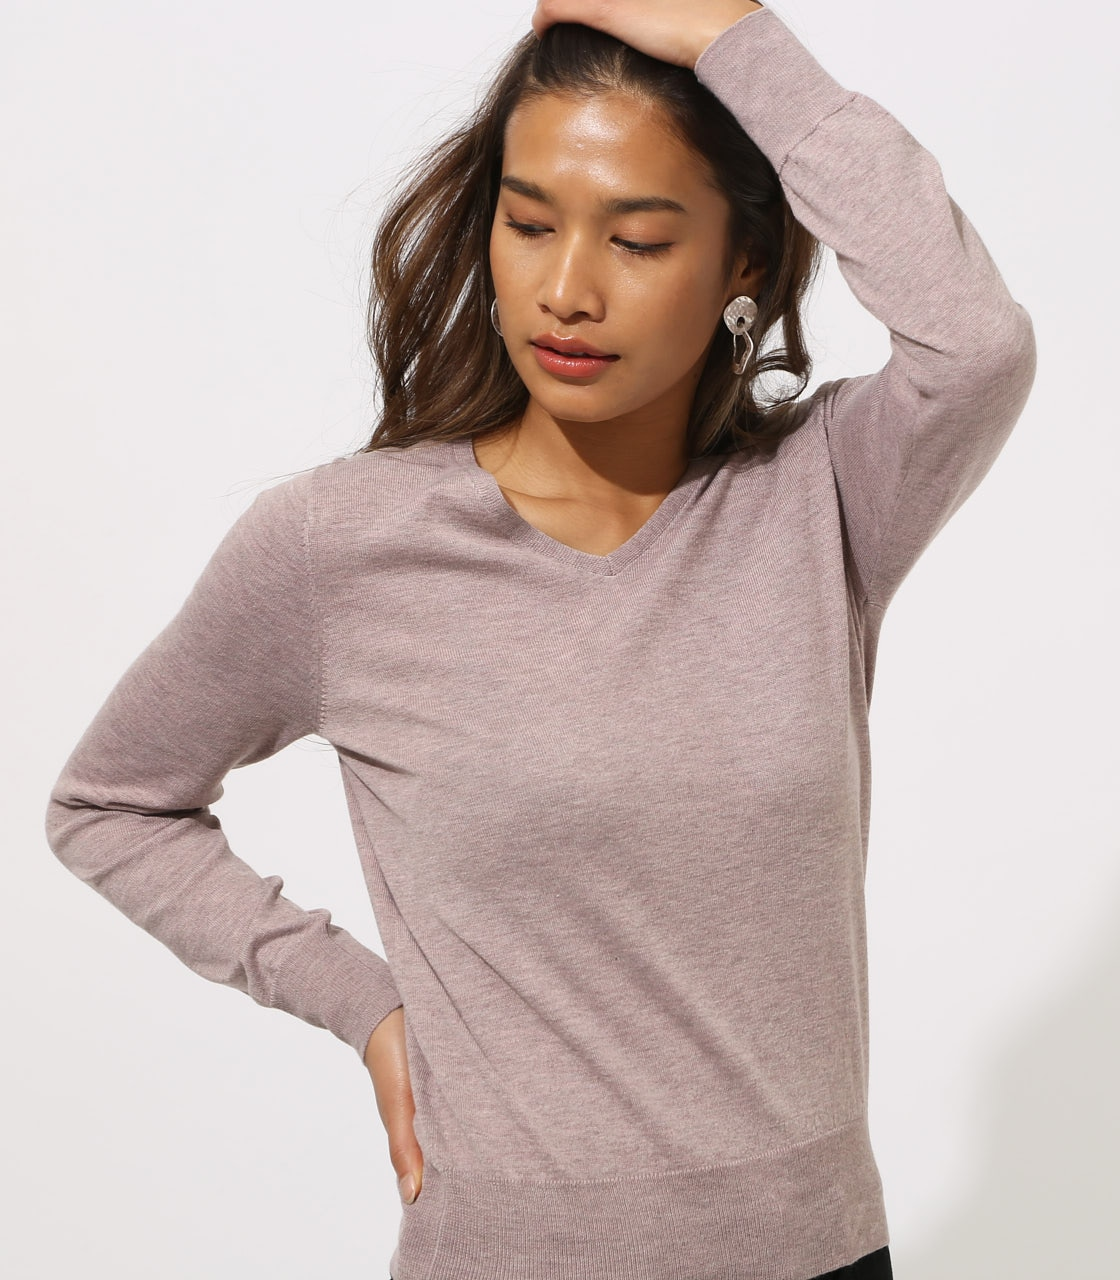 BASIC VNECK KNIT TOPS 詳細画像 BEG 2